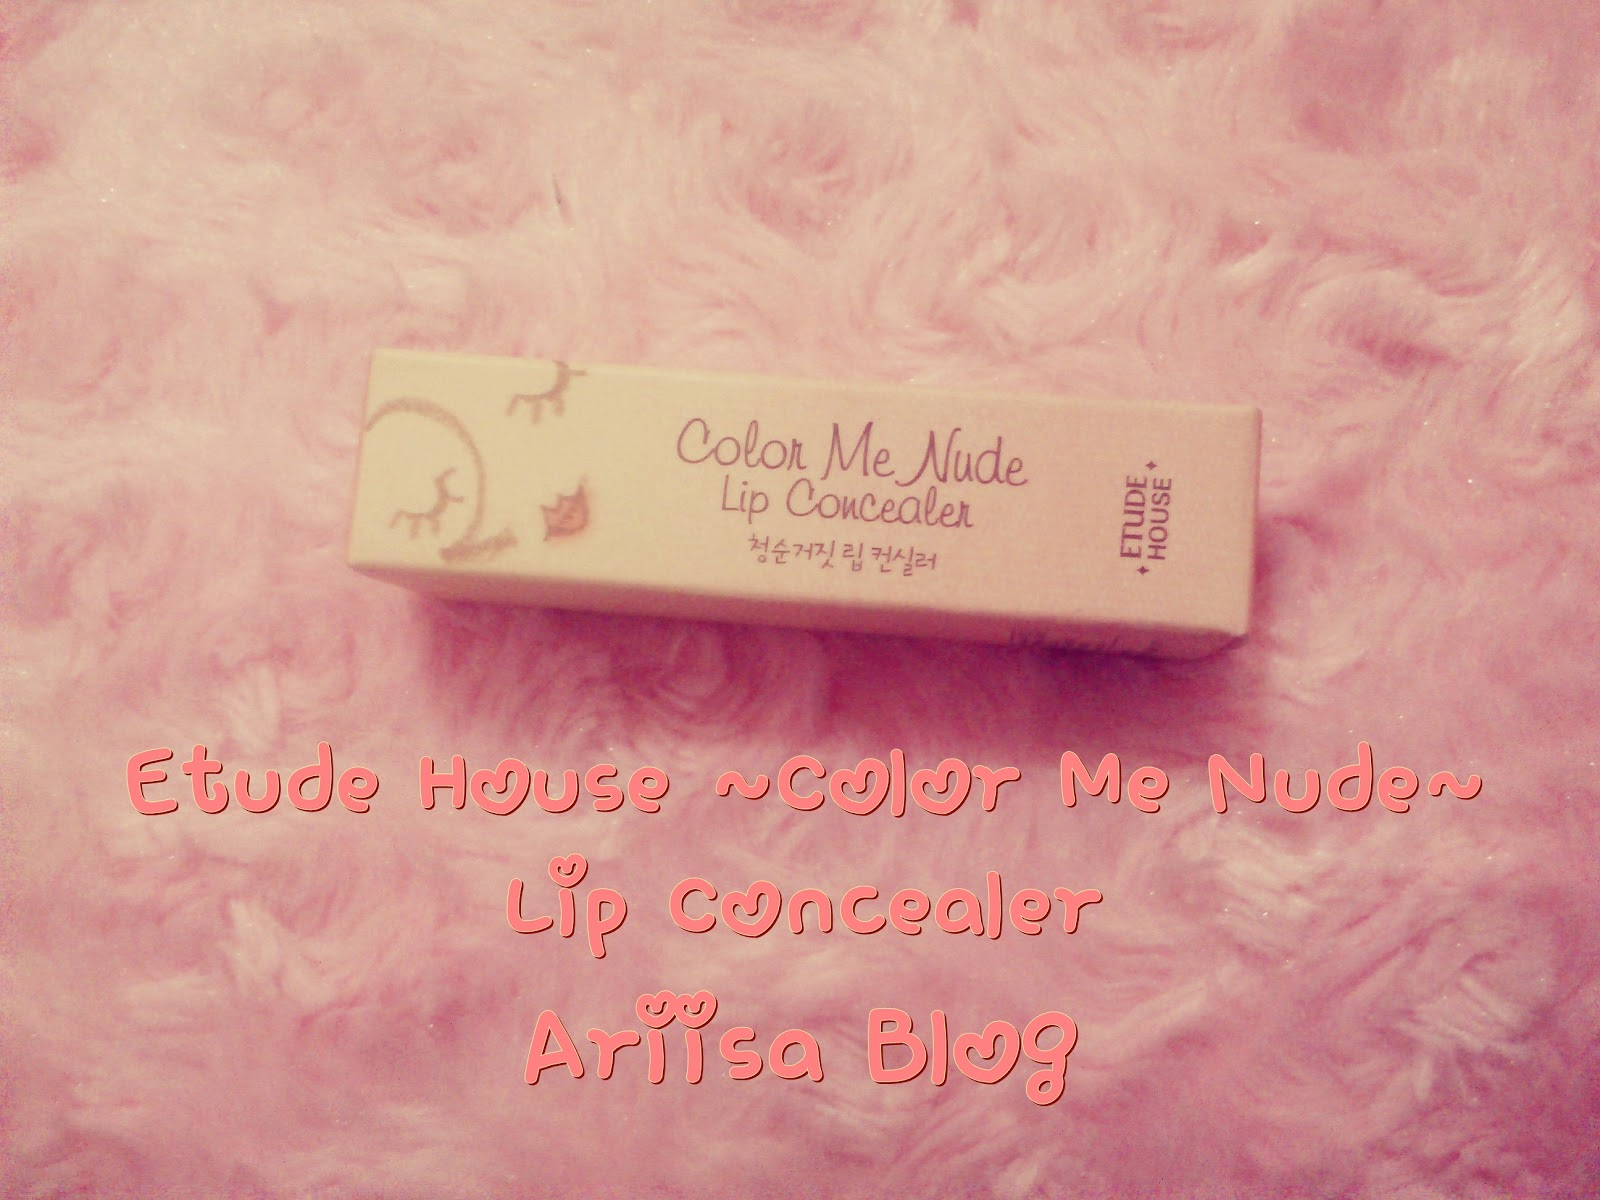 Arisa Blog: ~Review~ Etude House Color Me Nude Lip Concealer